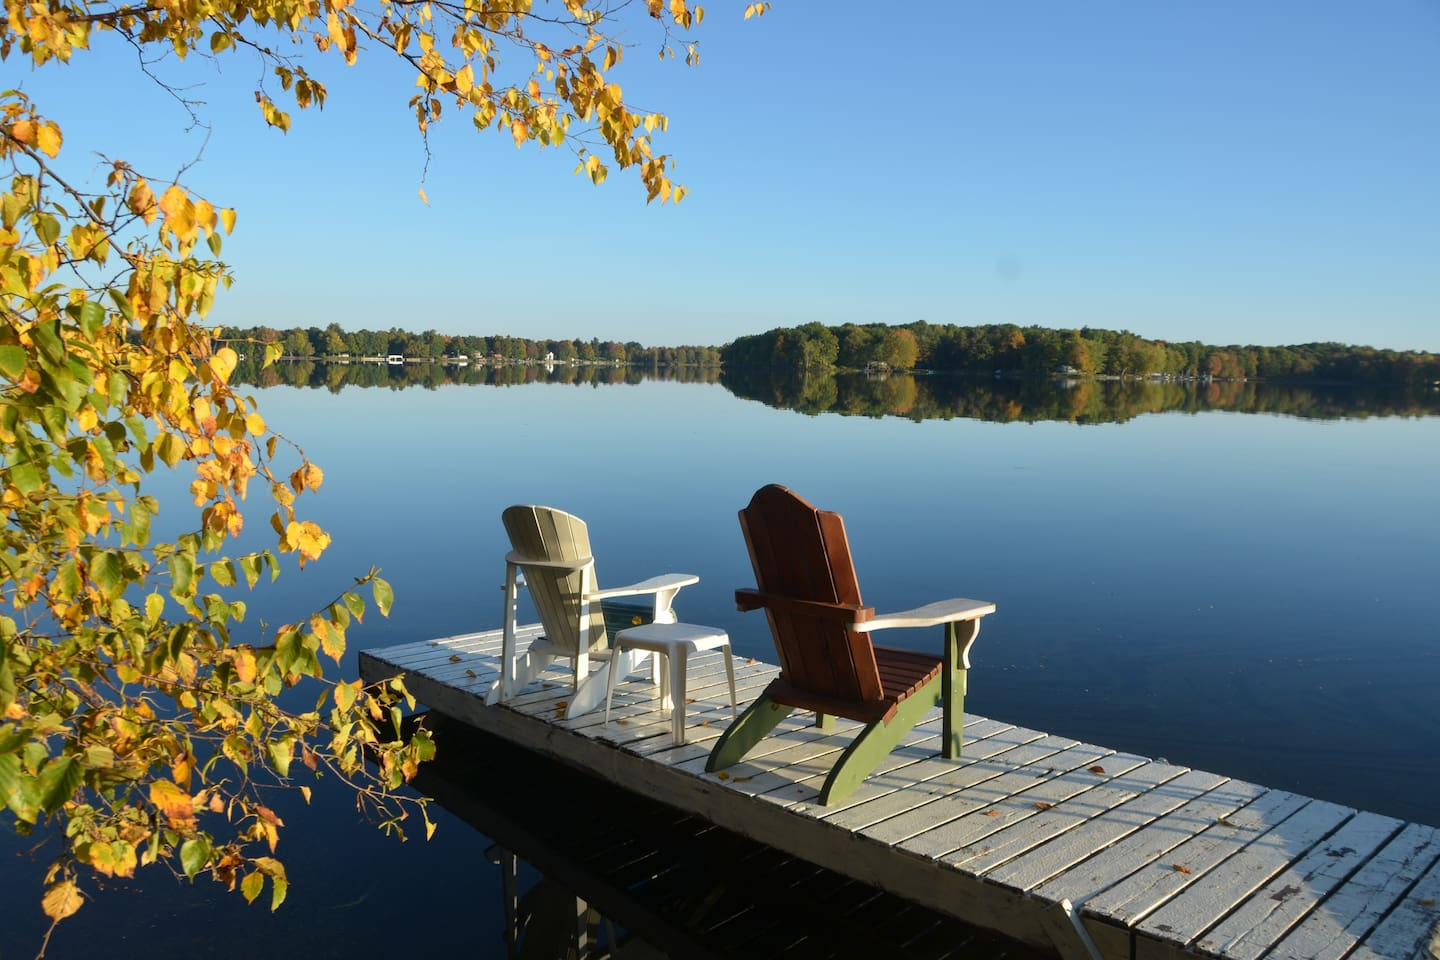 Autumn day on the dock... this listing is available year around so click forward for photos of all 4 seasons.